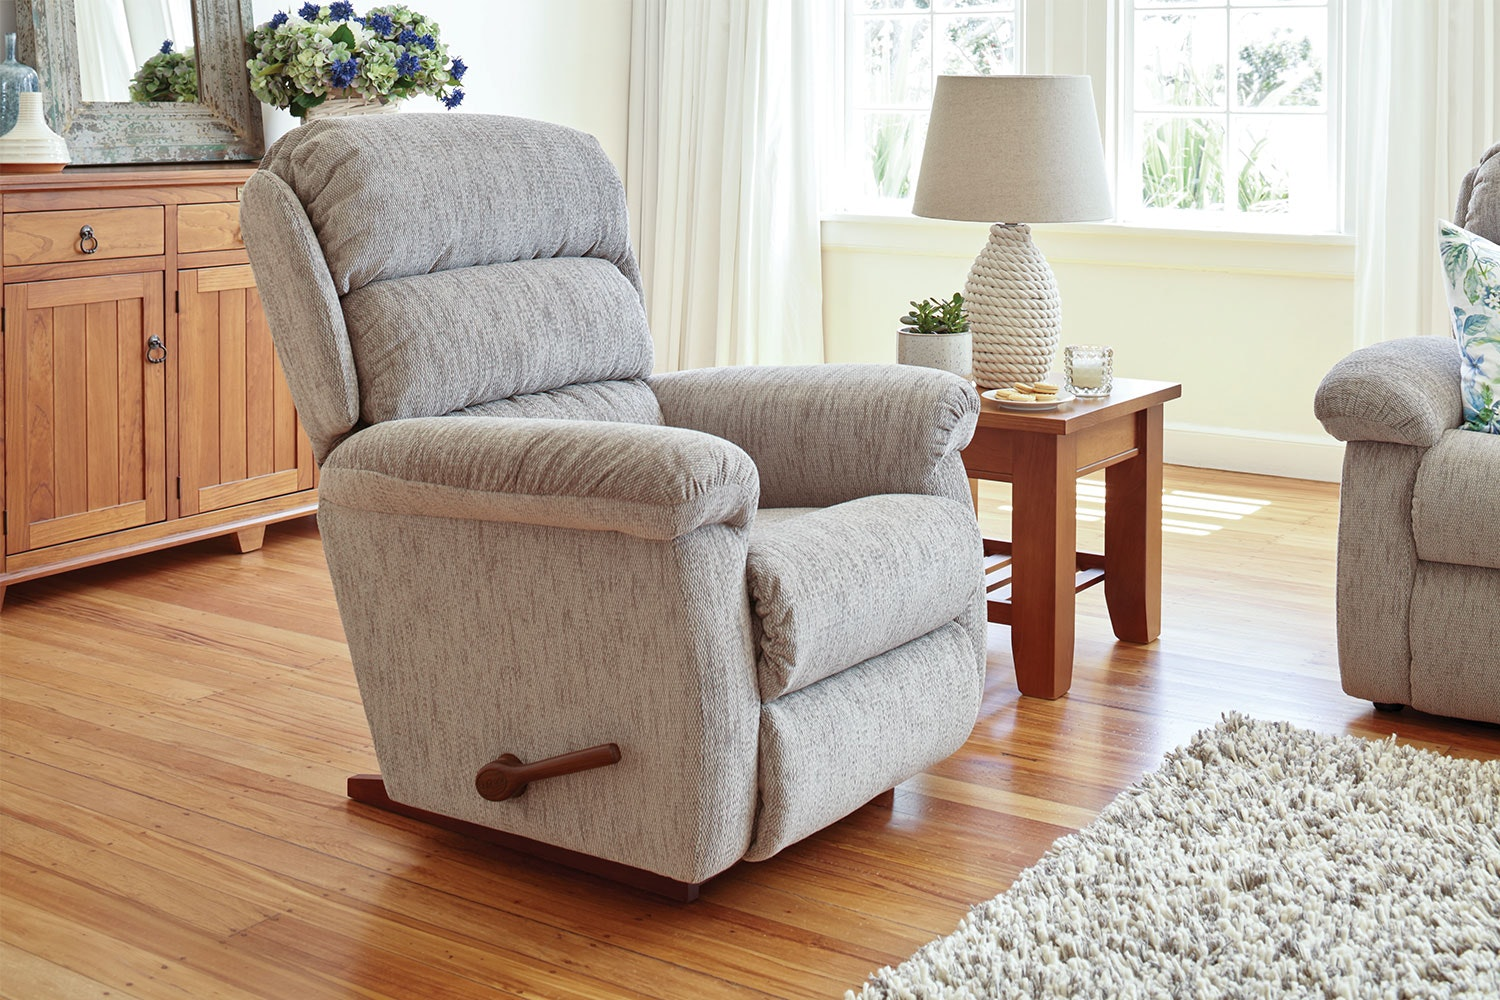 Rapids 3 Piece Fabric Recliner Lounge Suite by La-Z-Boy